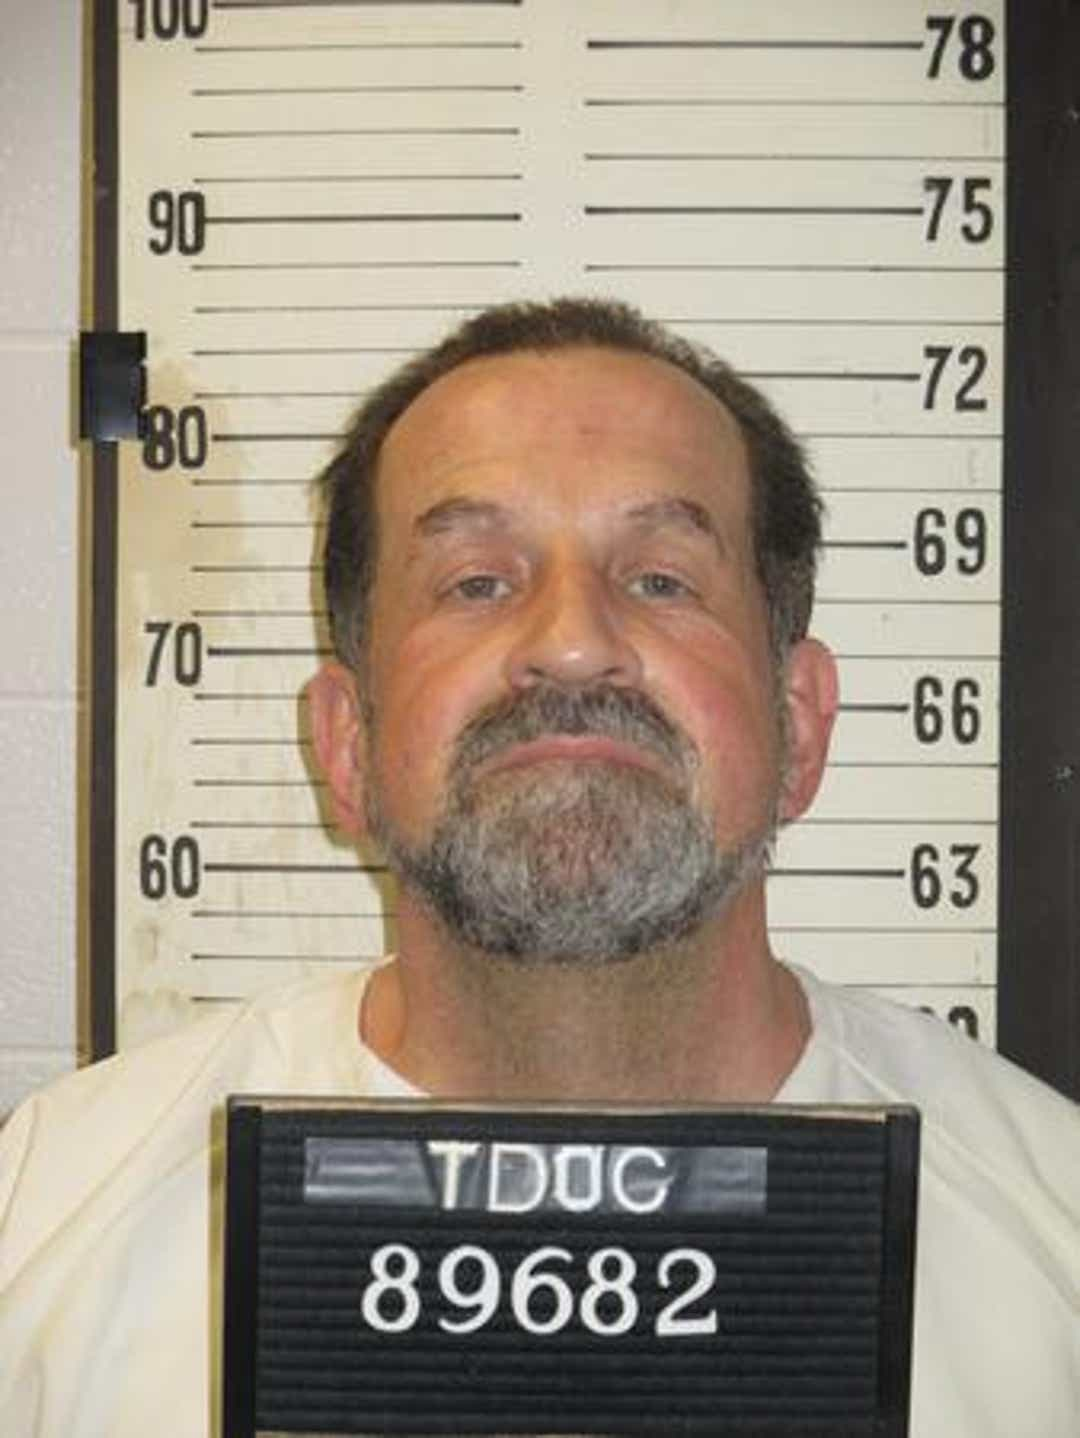 Death Row Inmate Who Murdered Peadophile Executed By Electric Chair